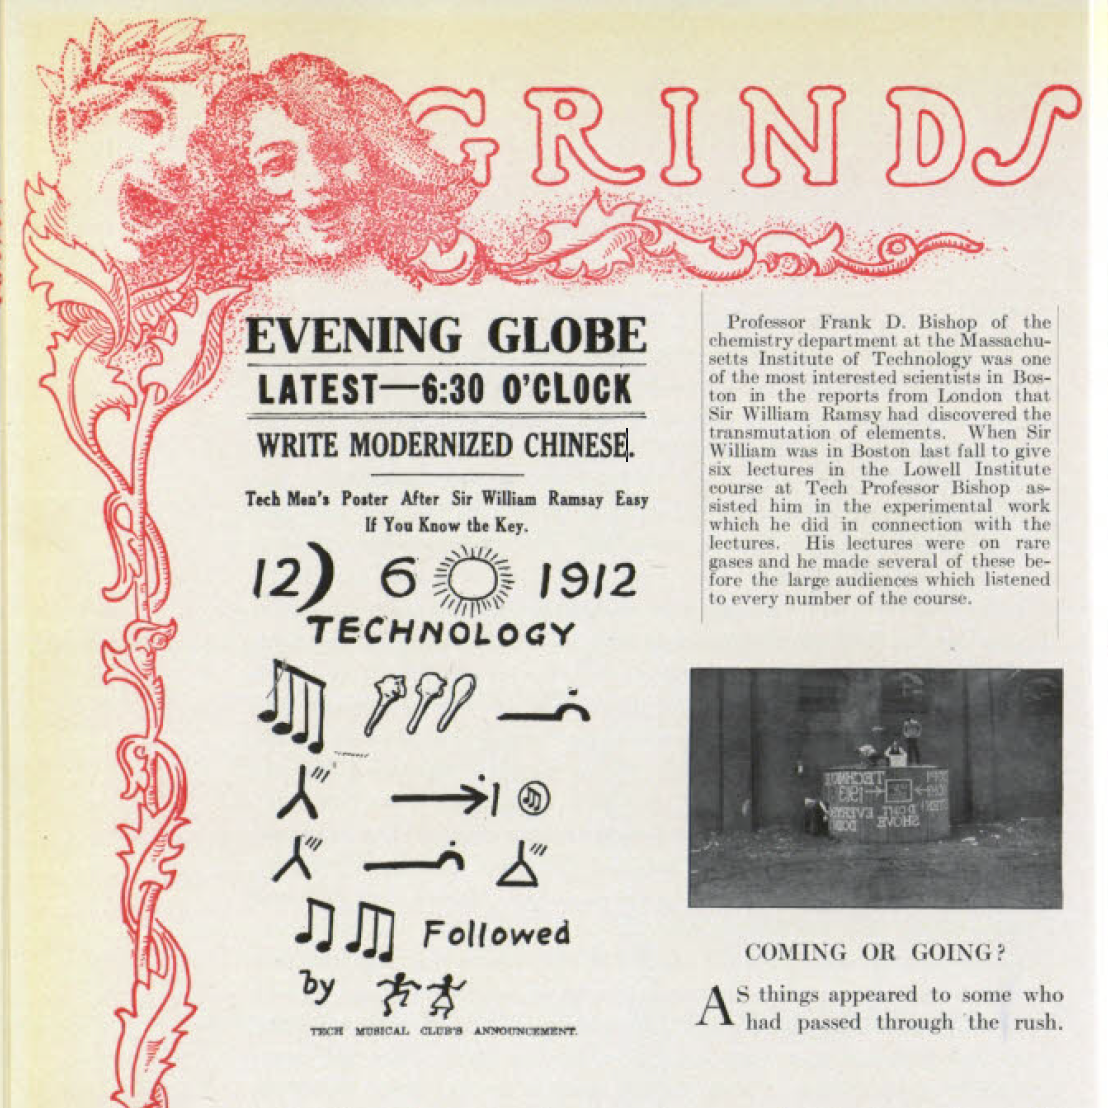 """""""Grind"""" poking fun at Chinese script, MIT   Technique  1914. """"Modernized Chinese"""" is incorrectly represented as a primitive pictographic writing system."""